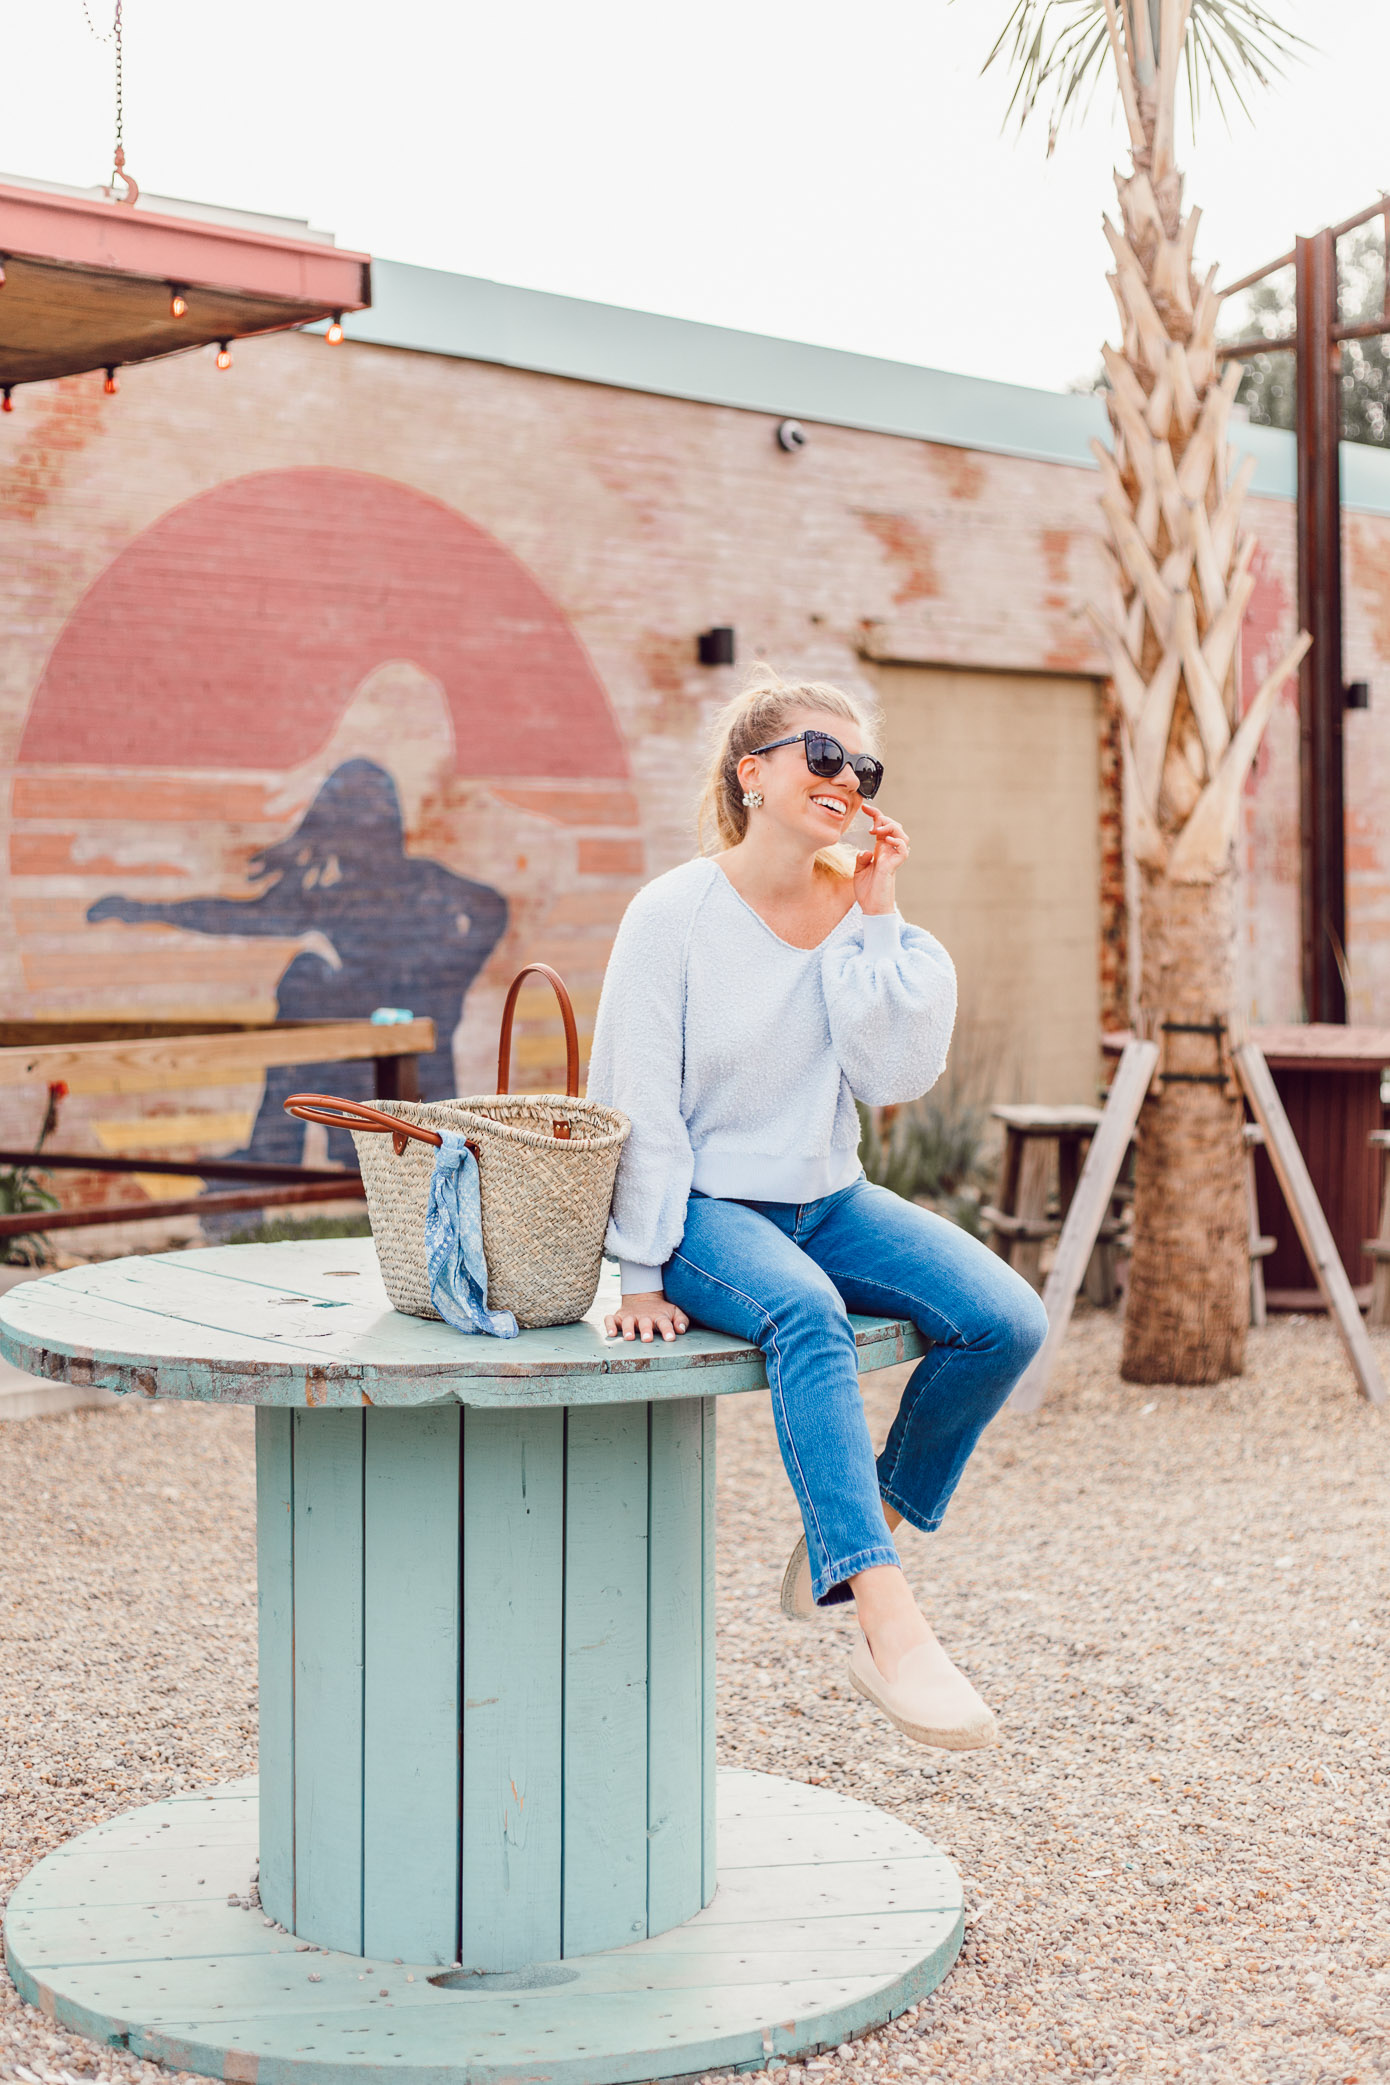 Summer Everyday Casual | Free People Found My Friend Sweater, FRAME Le Slender Straight Leg Jeans styled on Louella Reese Blog